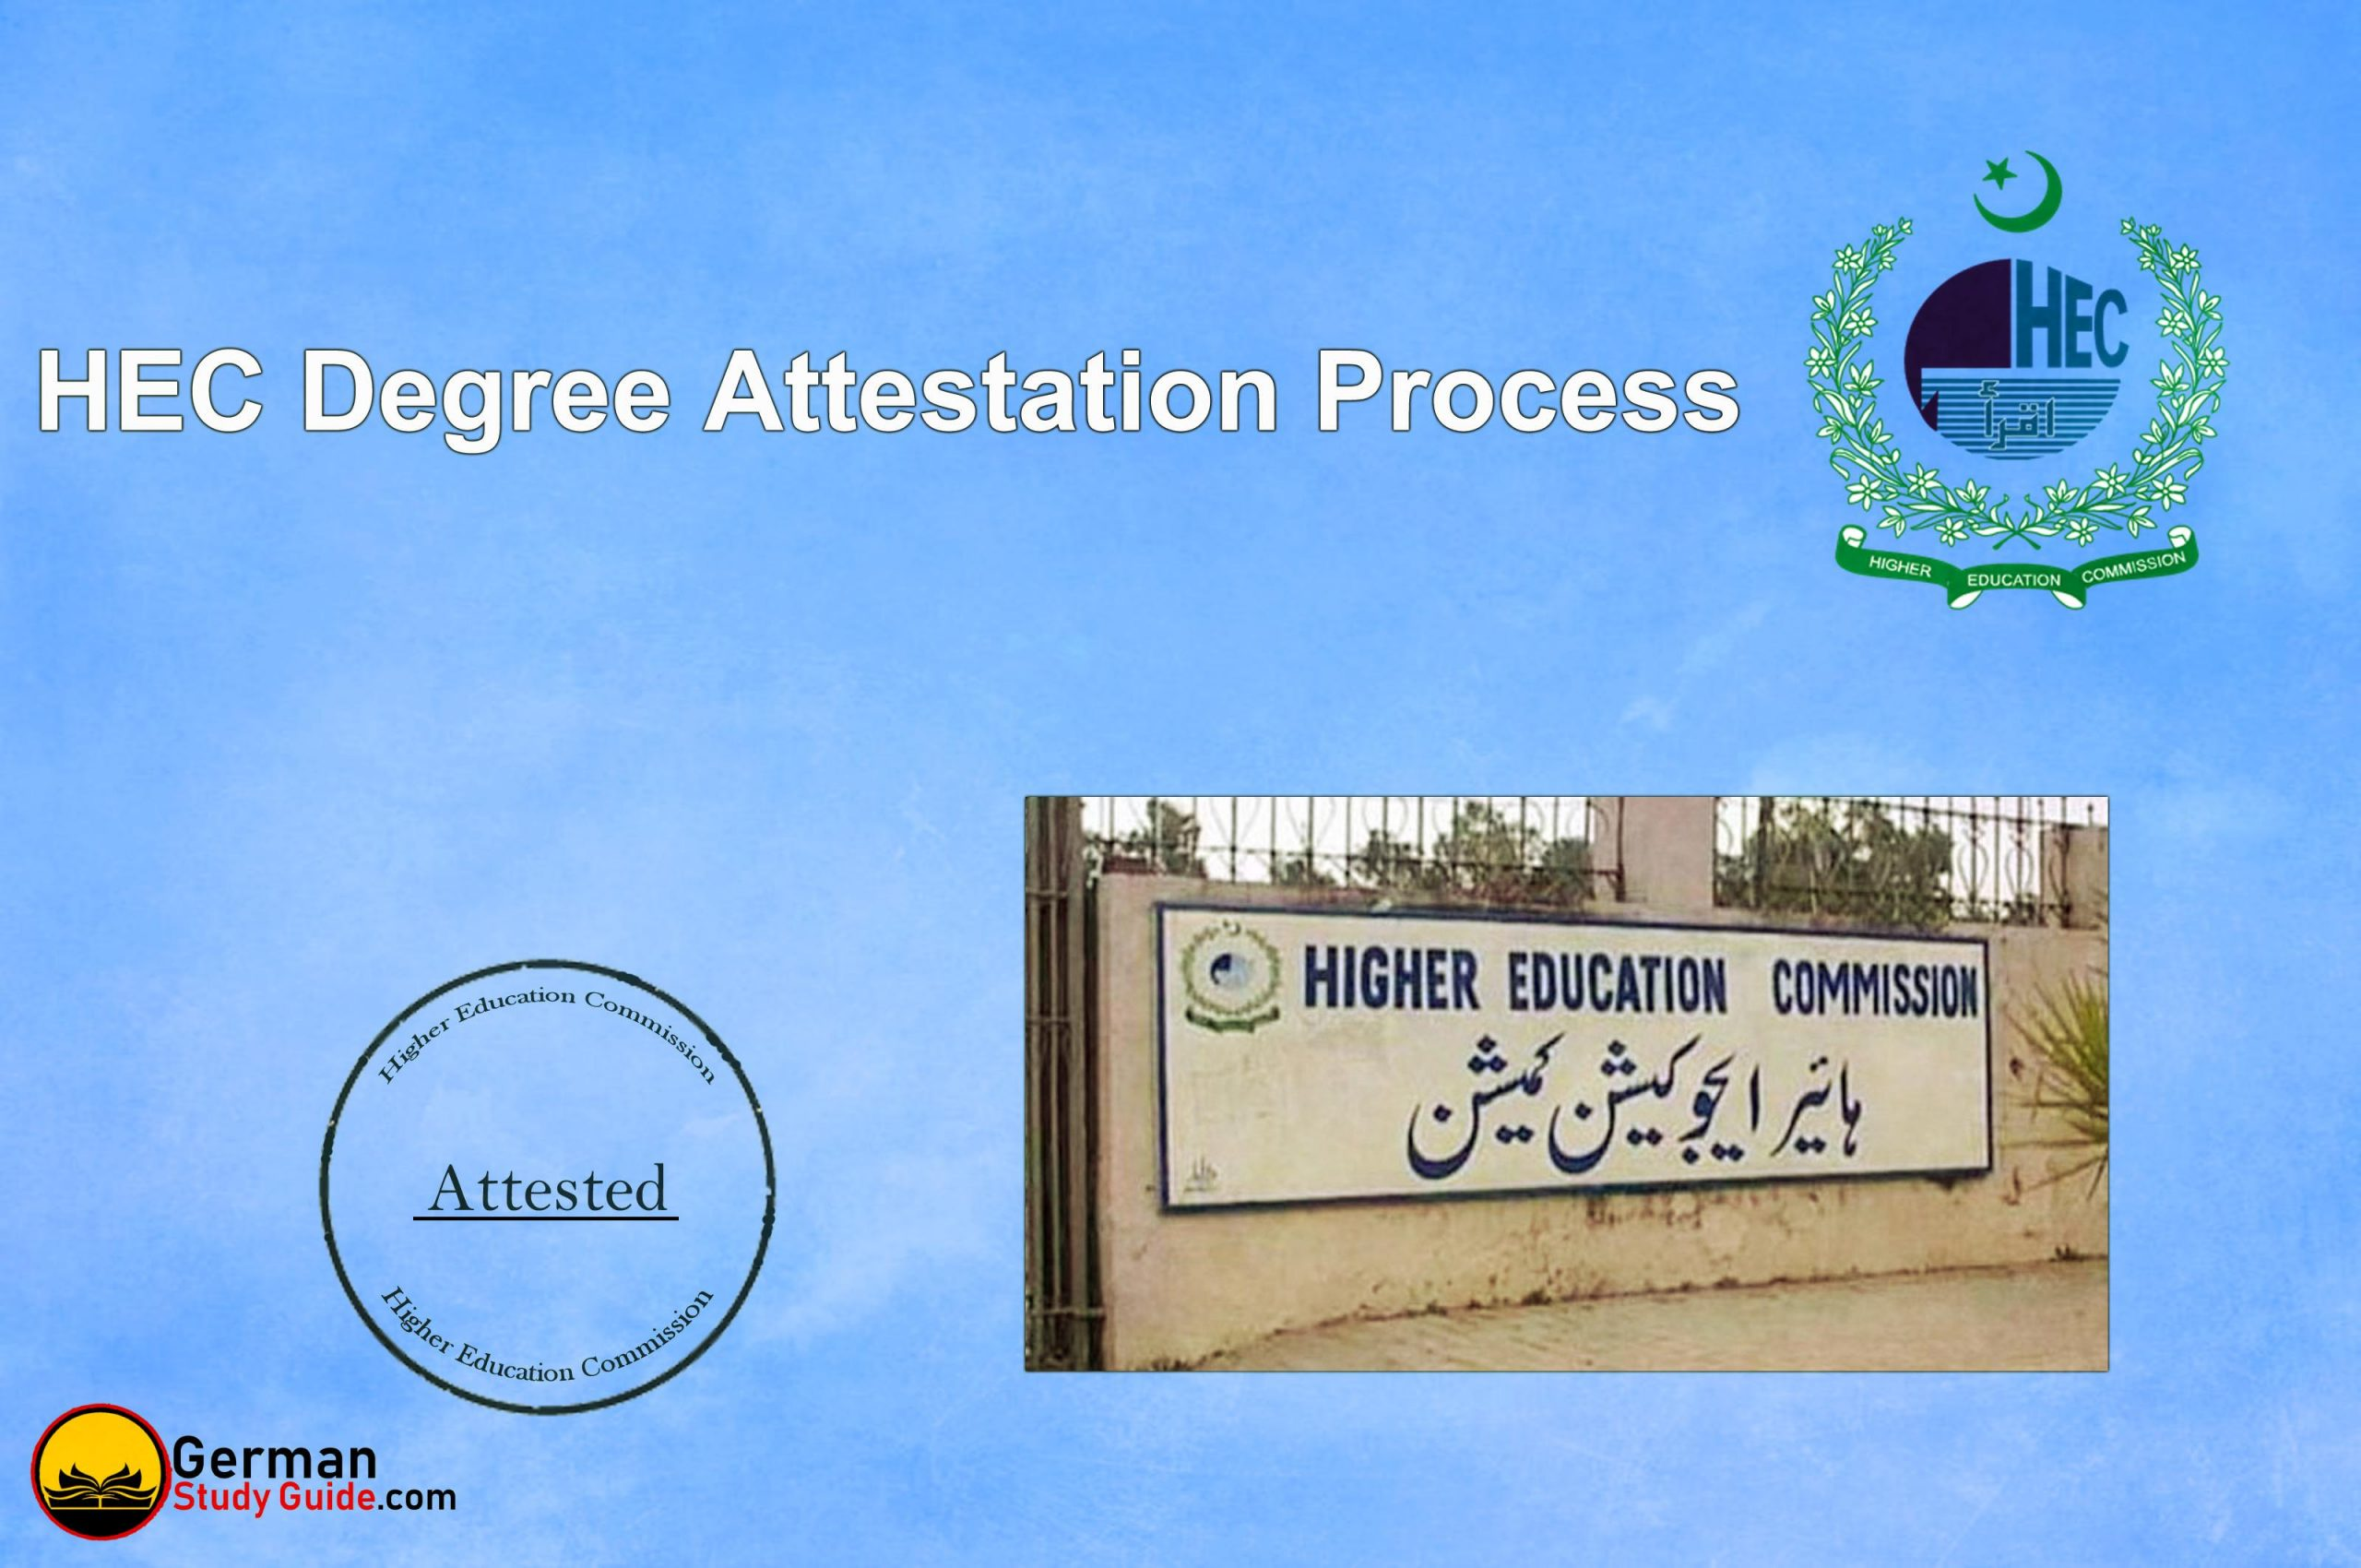 HEC degree attestation process